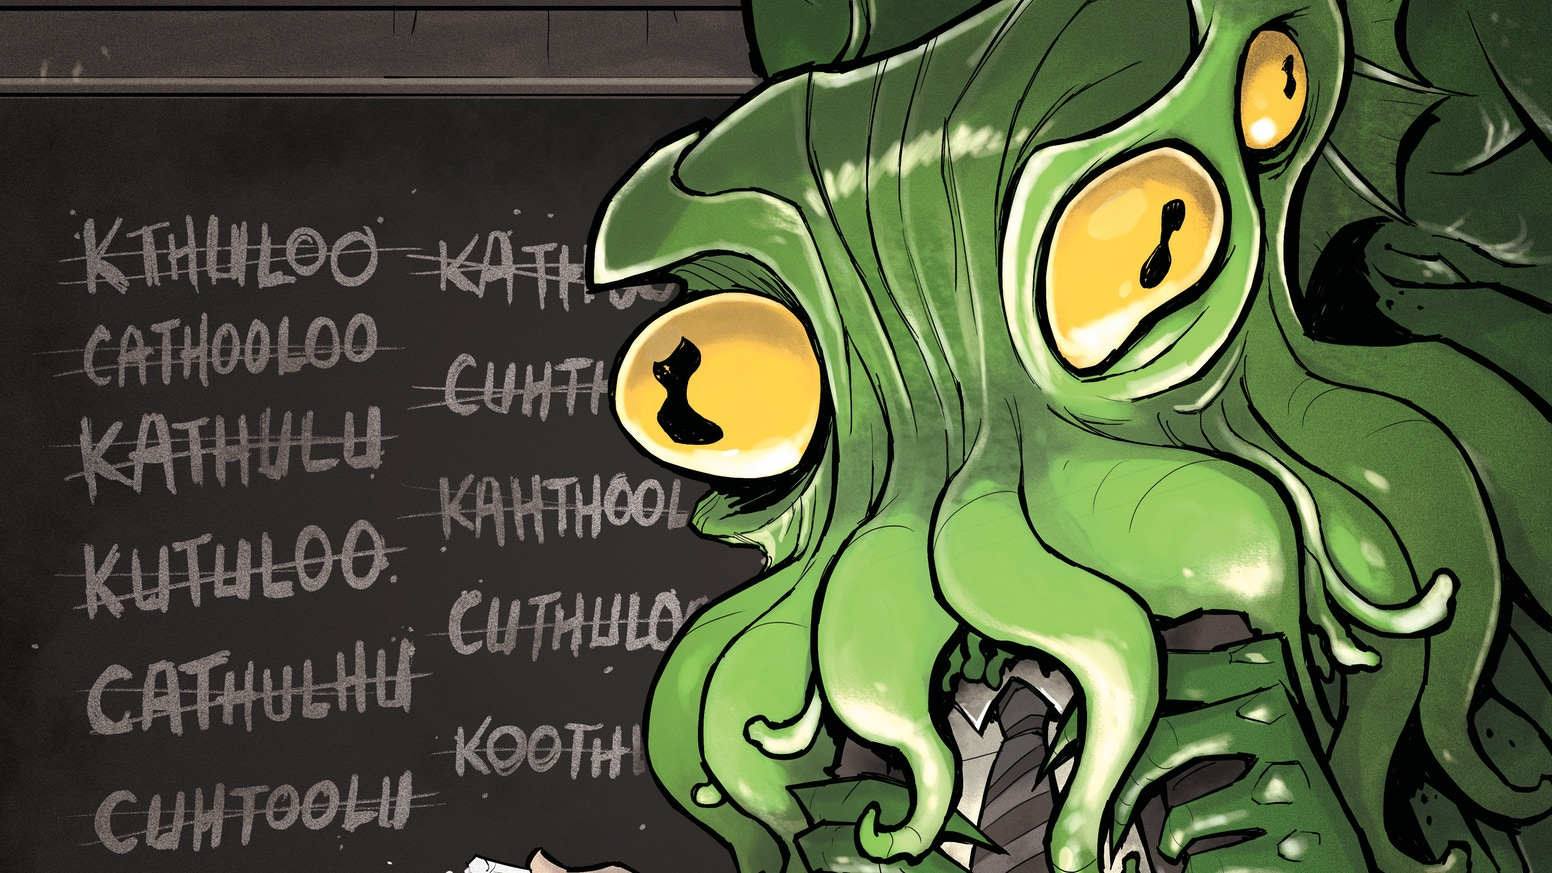 A love letter to Lovecraft. A comic anthology with thirty-five awesome stories about Lovecraftian gods and monsters, from fans to fans.